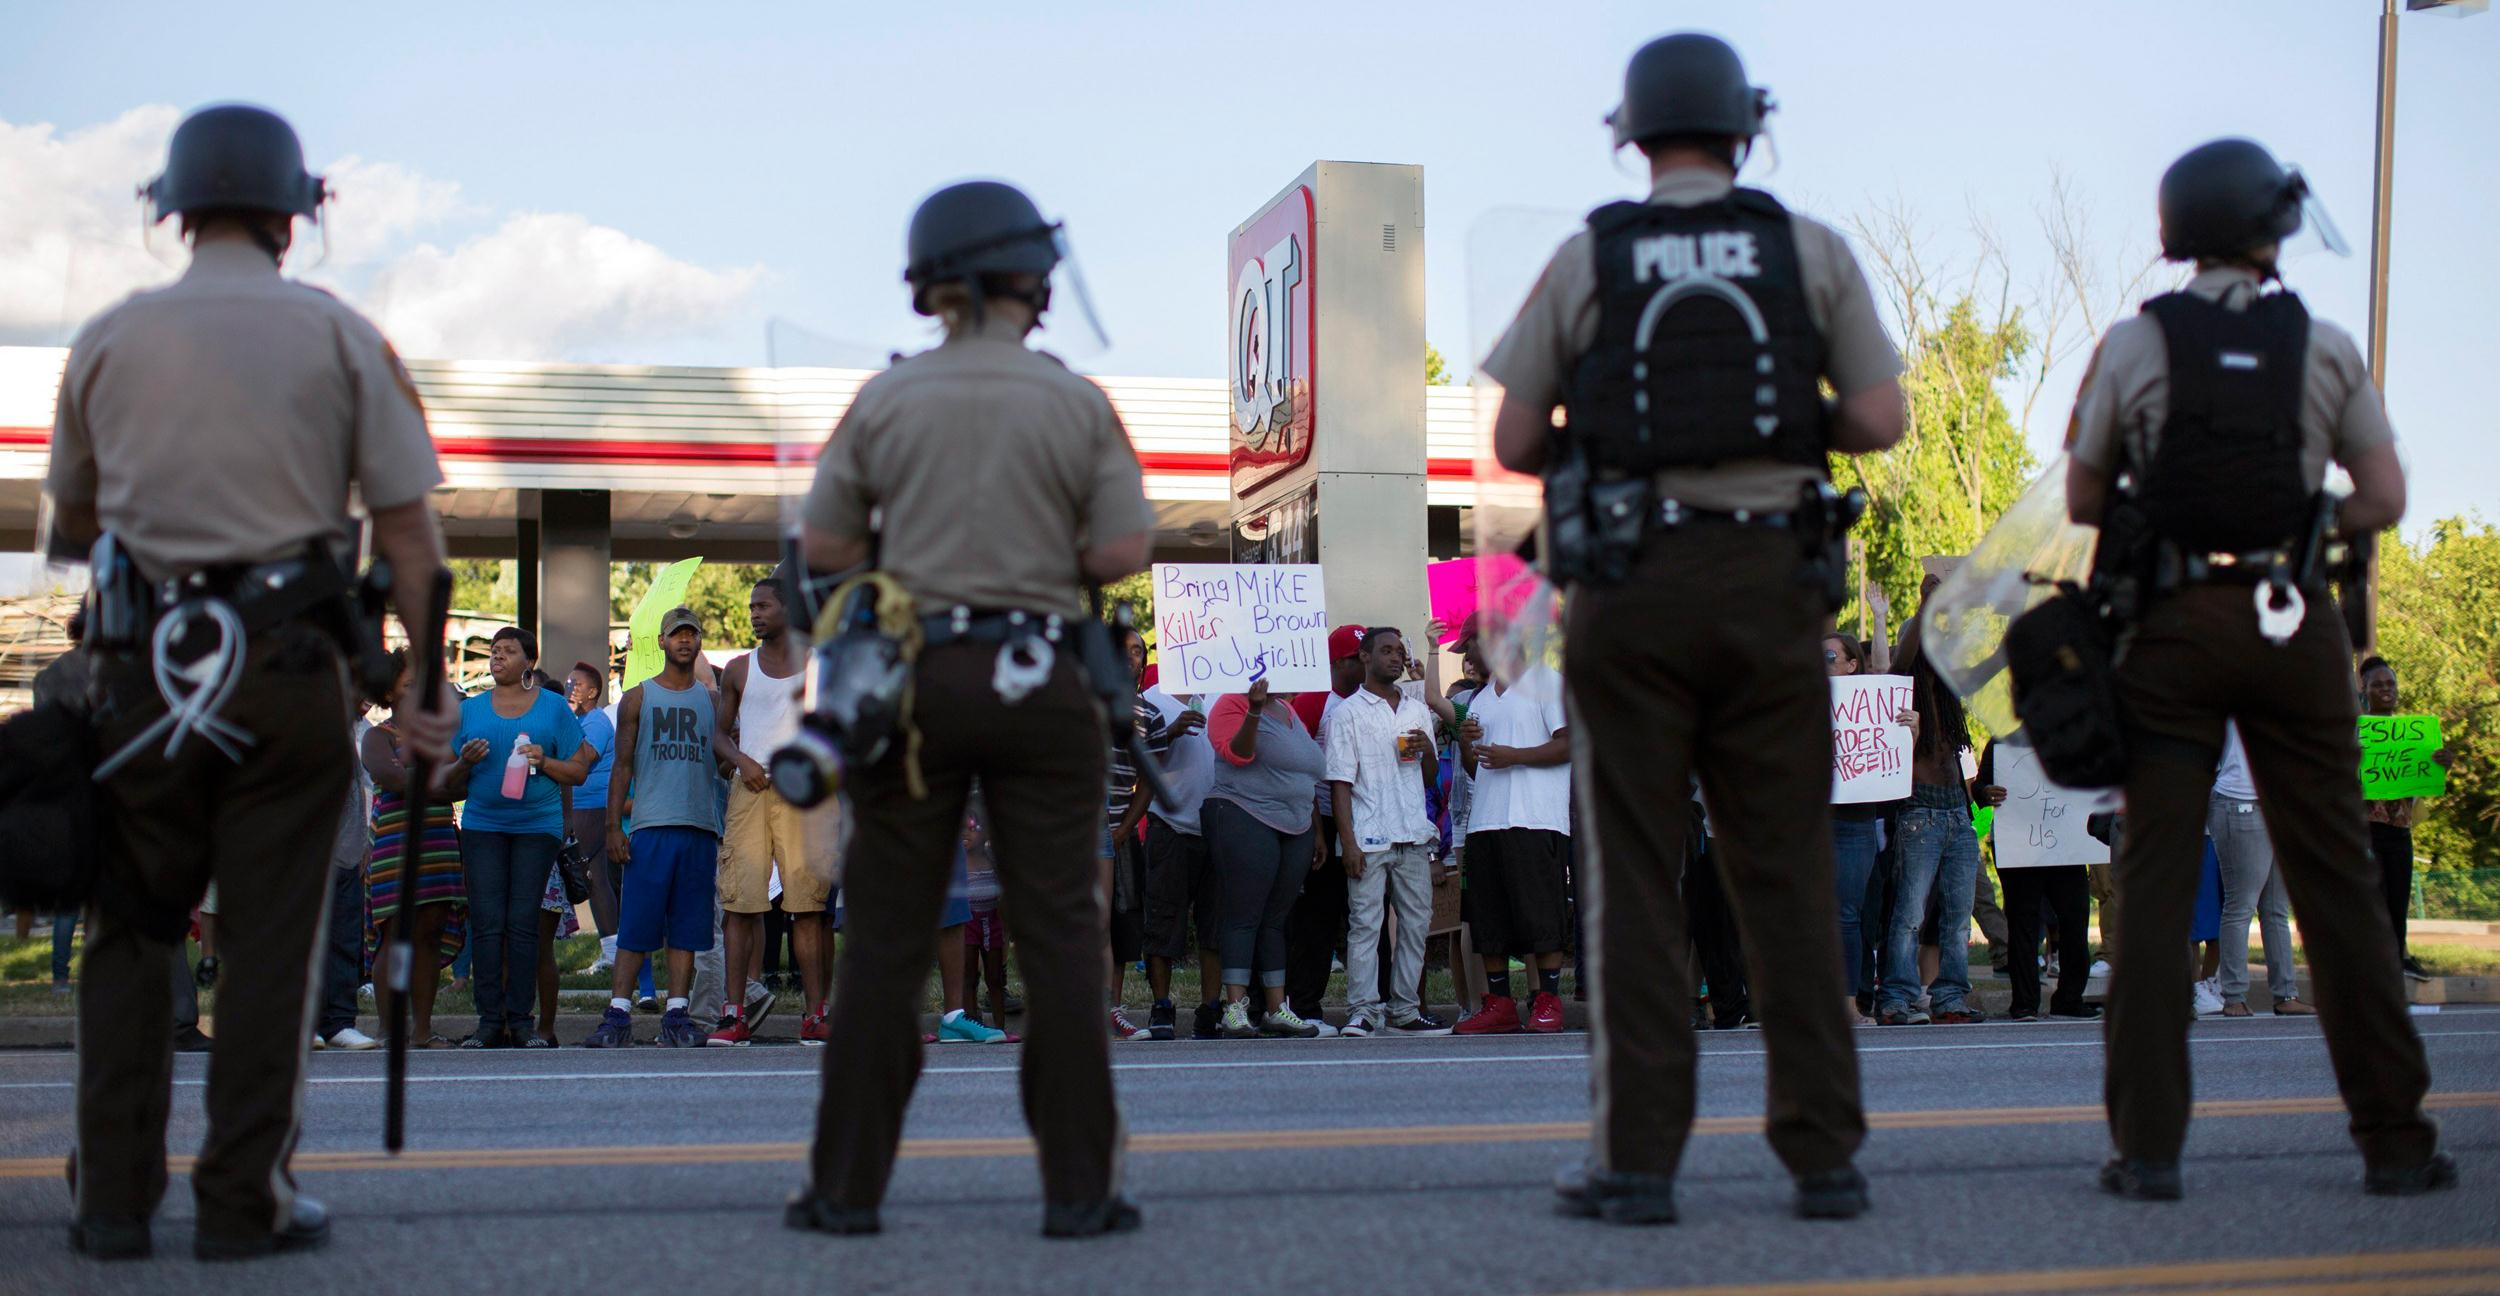 Image: Police officers watch as demonstrators protest the death of black teenager Michael Brown in Ferguson